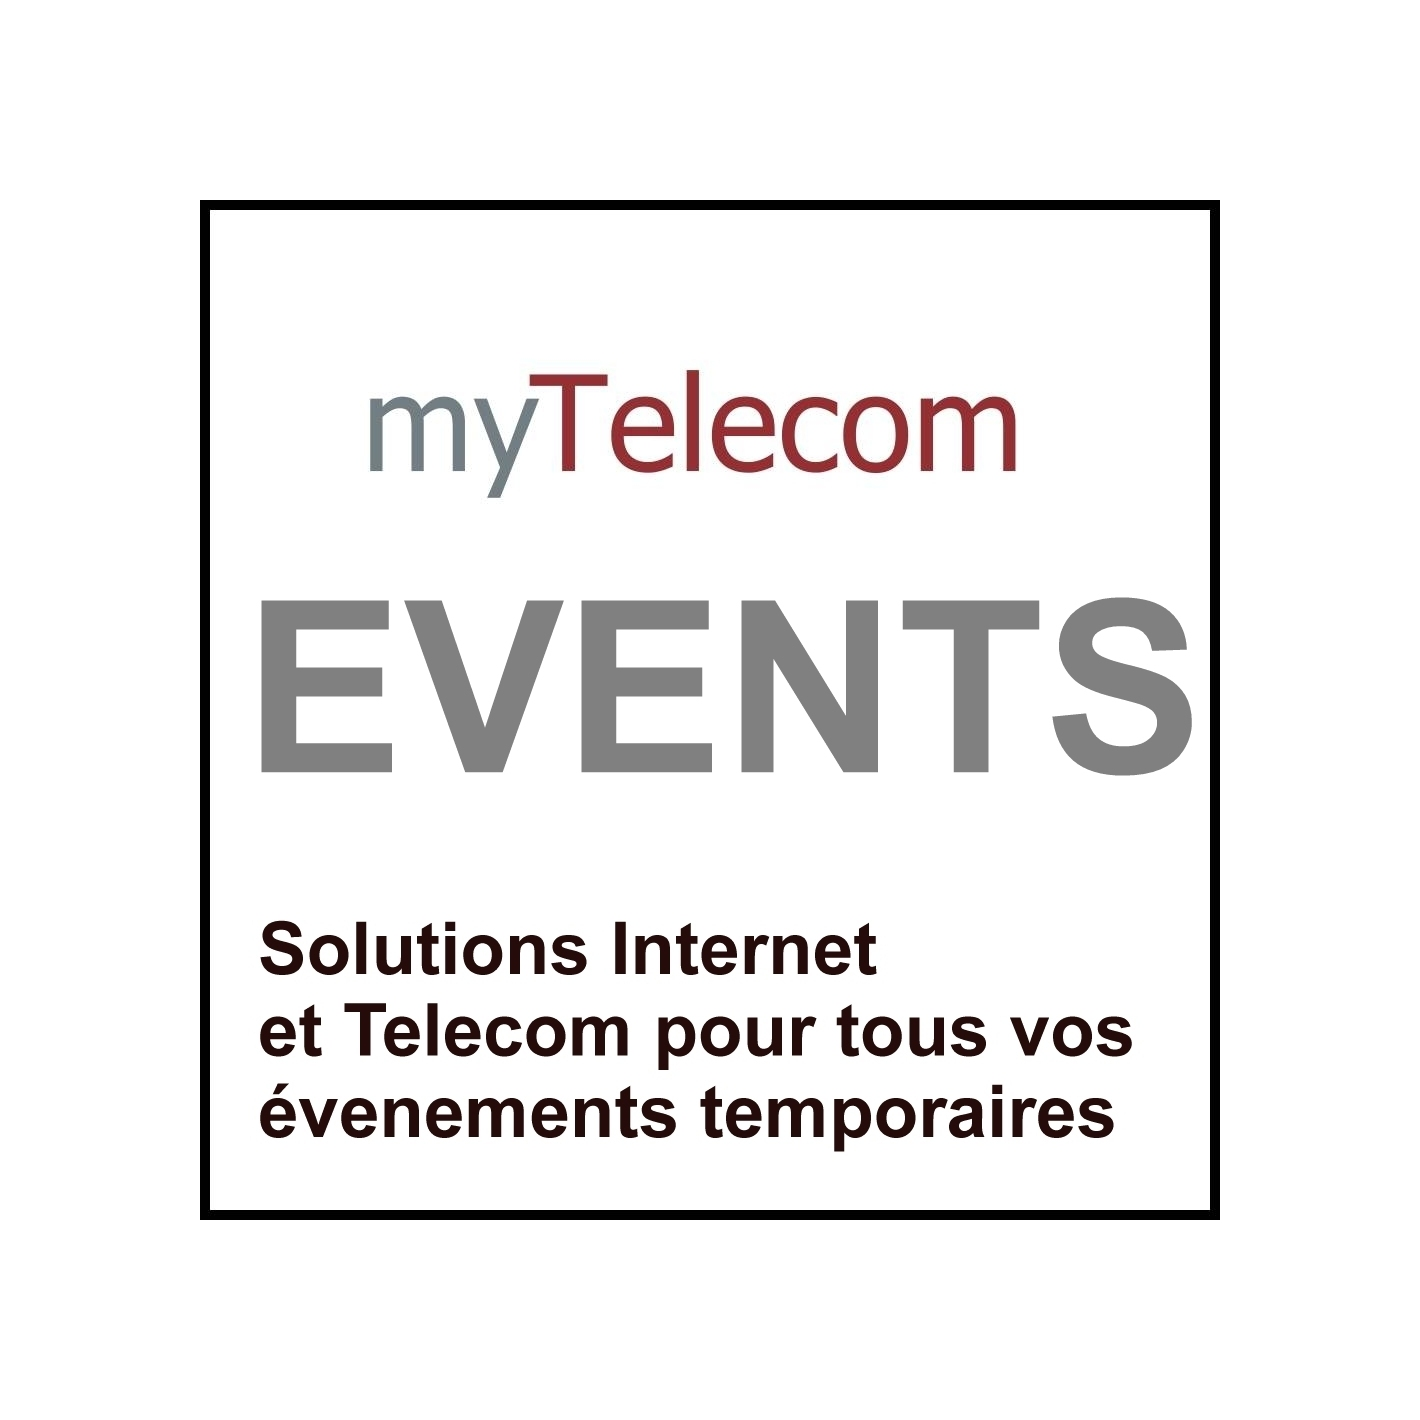 4G Internet Temporaire (Urgent) myTelecom Events